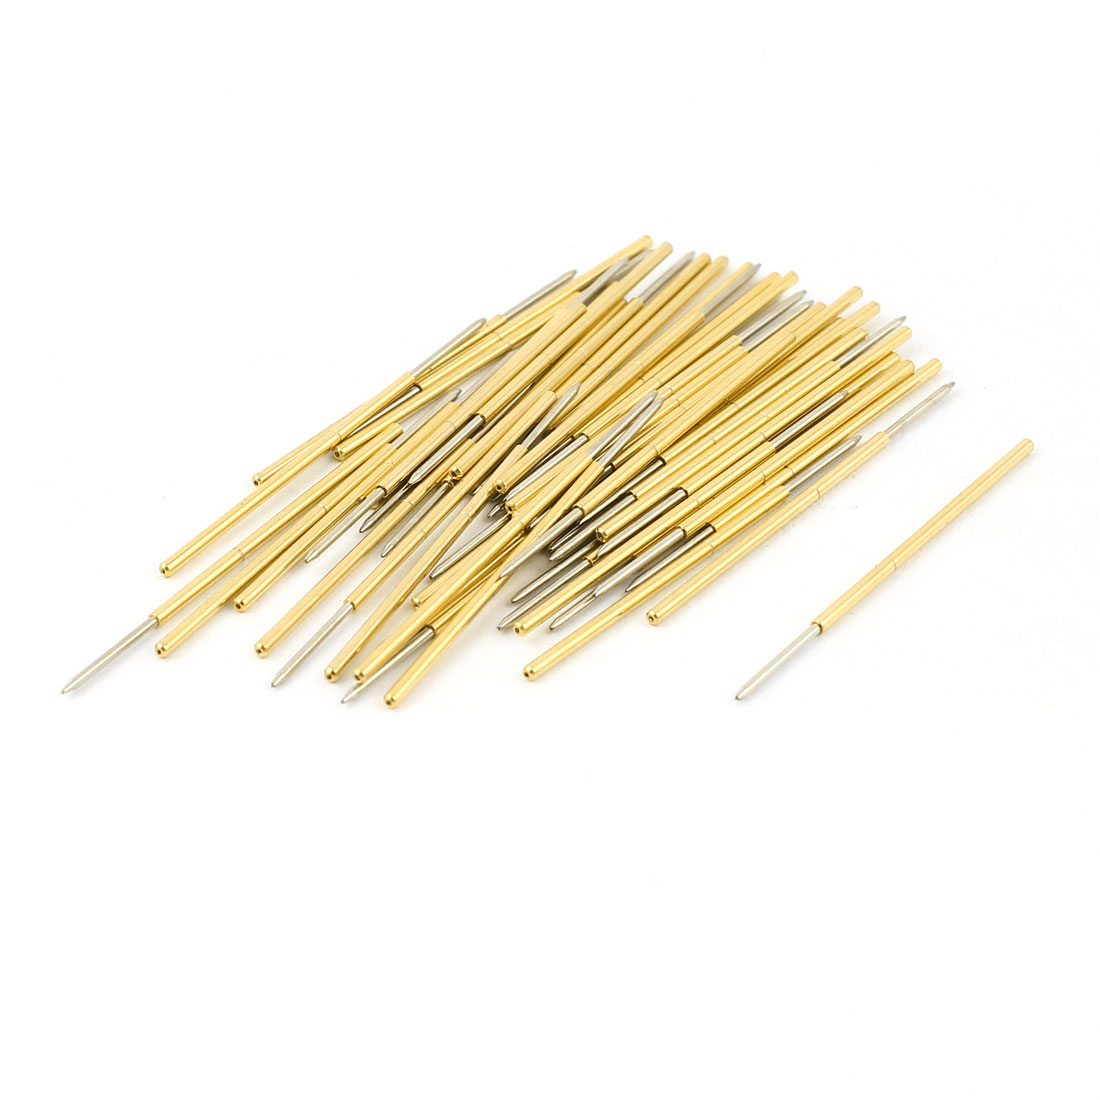 50 Pcs PL75-F 0.74mm Dia Tip Spring Testing Probes Pin 33.5mm Length